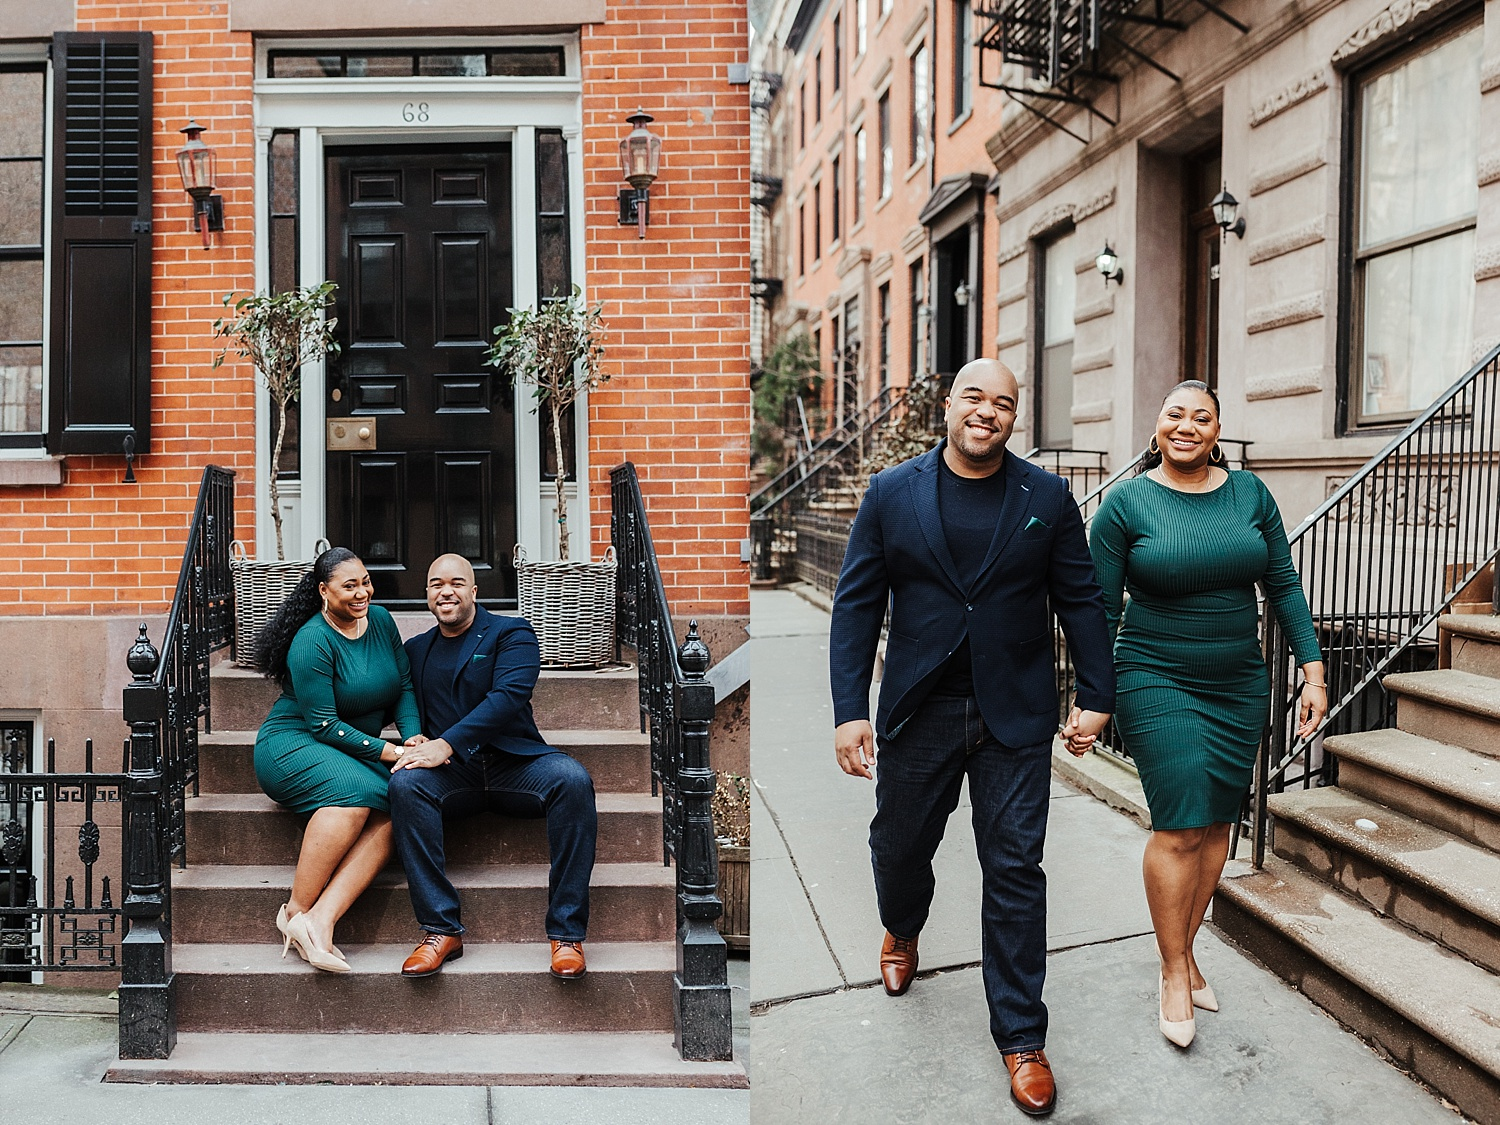 West Village Engagement Session, West Village Engagement Photos, West Village Engagement Photo Ideas, Tampa Wedding Photographers, Ashley Izquierdo